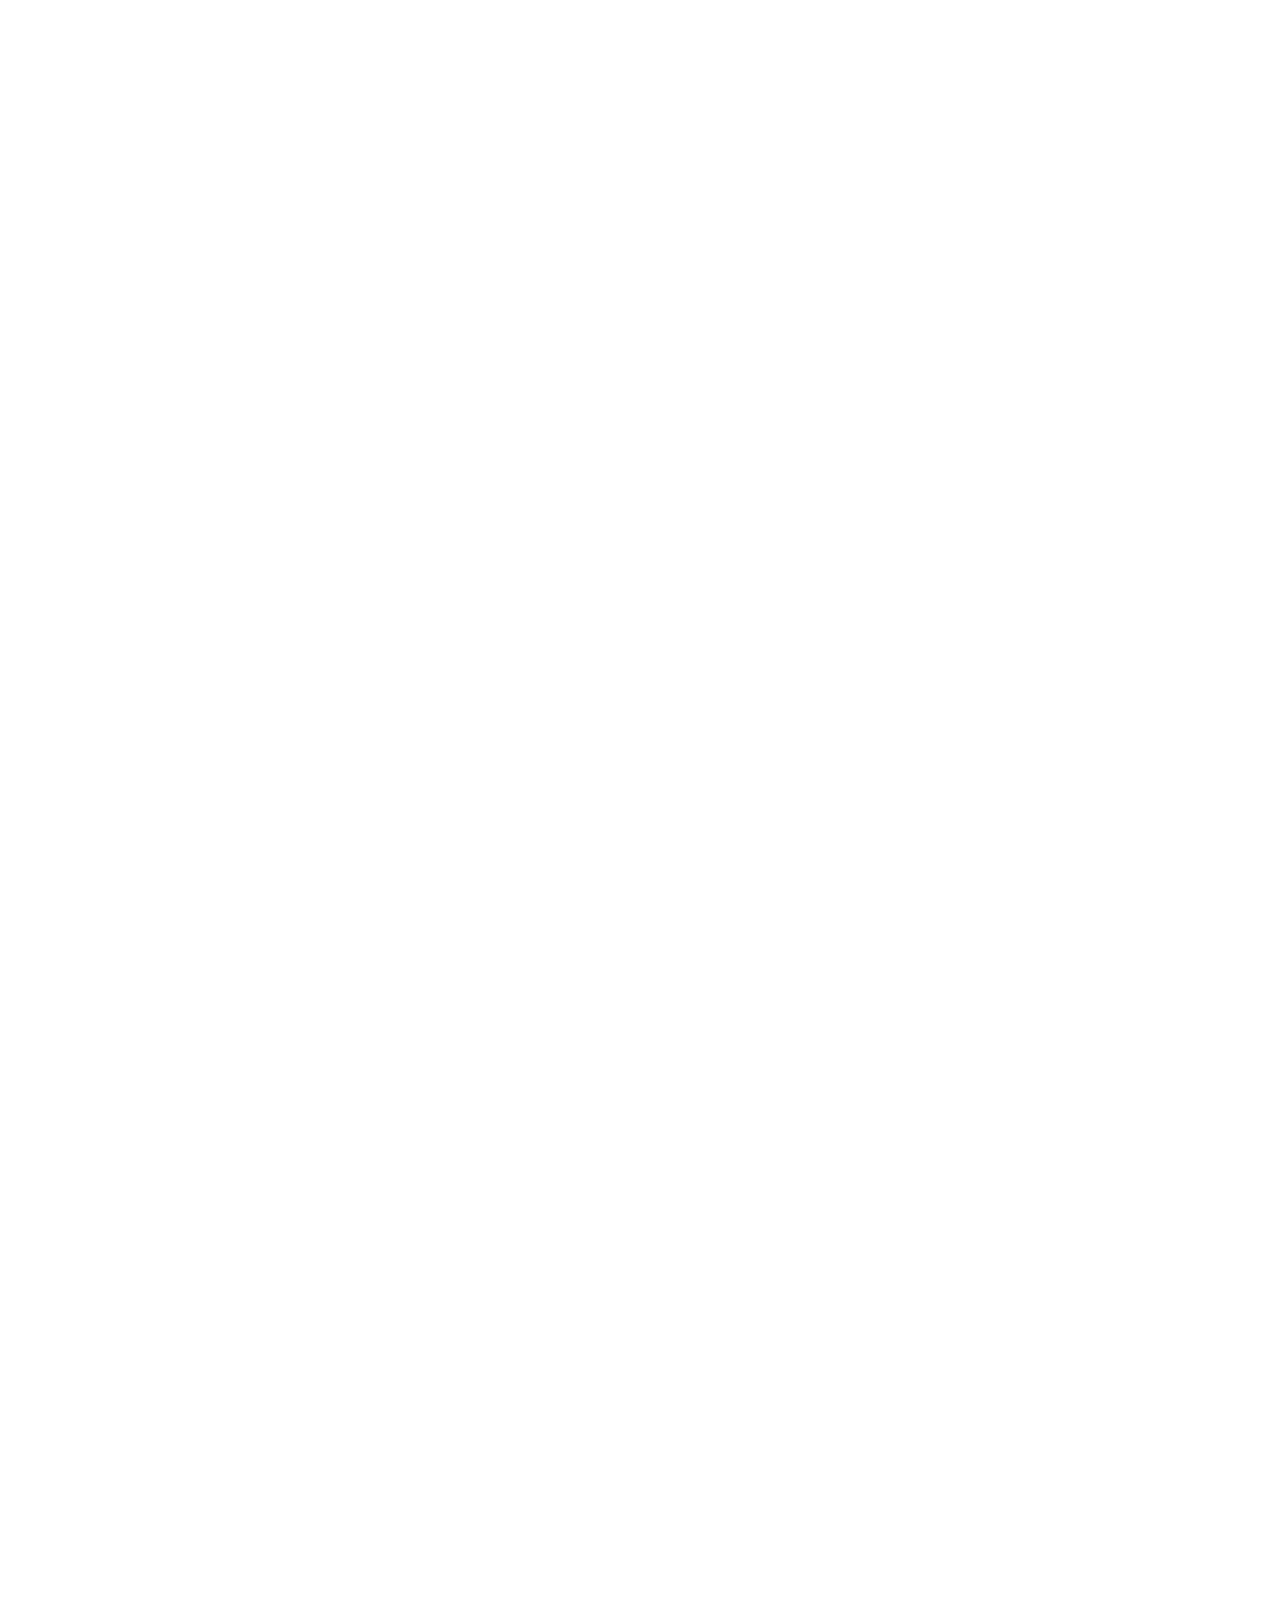 Head with cogs key. Manager clipart black and white